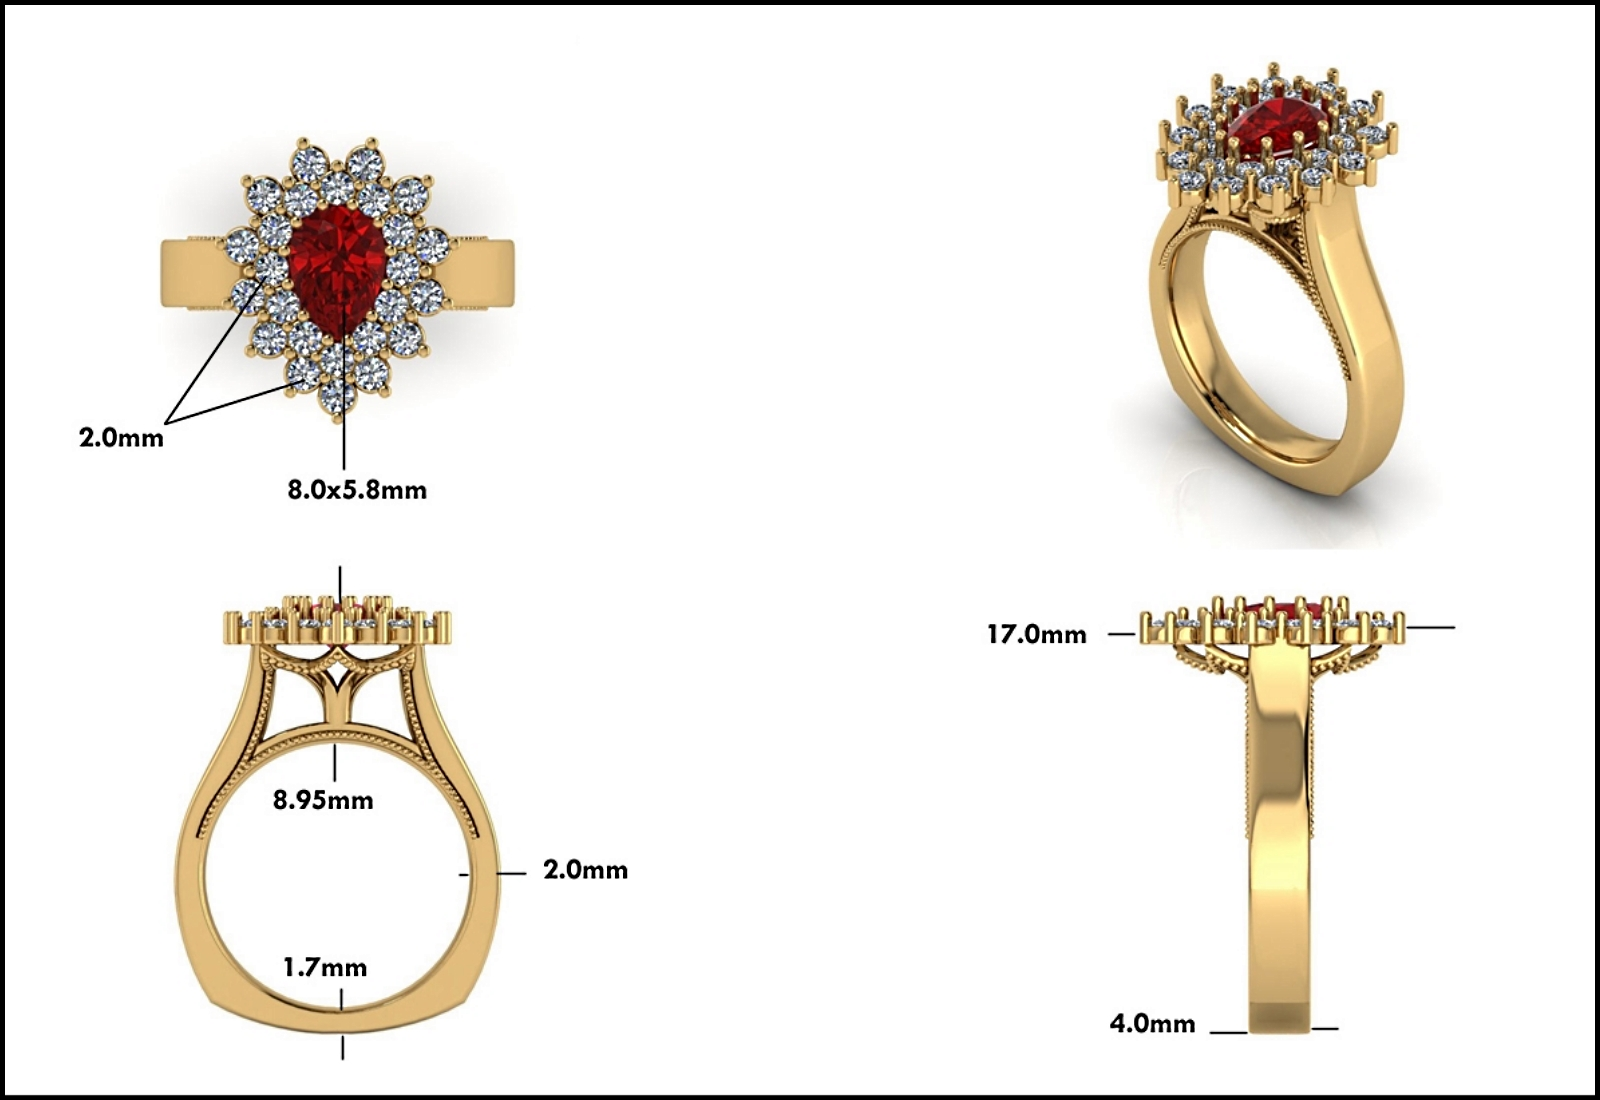 Custom Jewelry Design - Mitchum Jewelers - Image 25